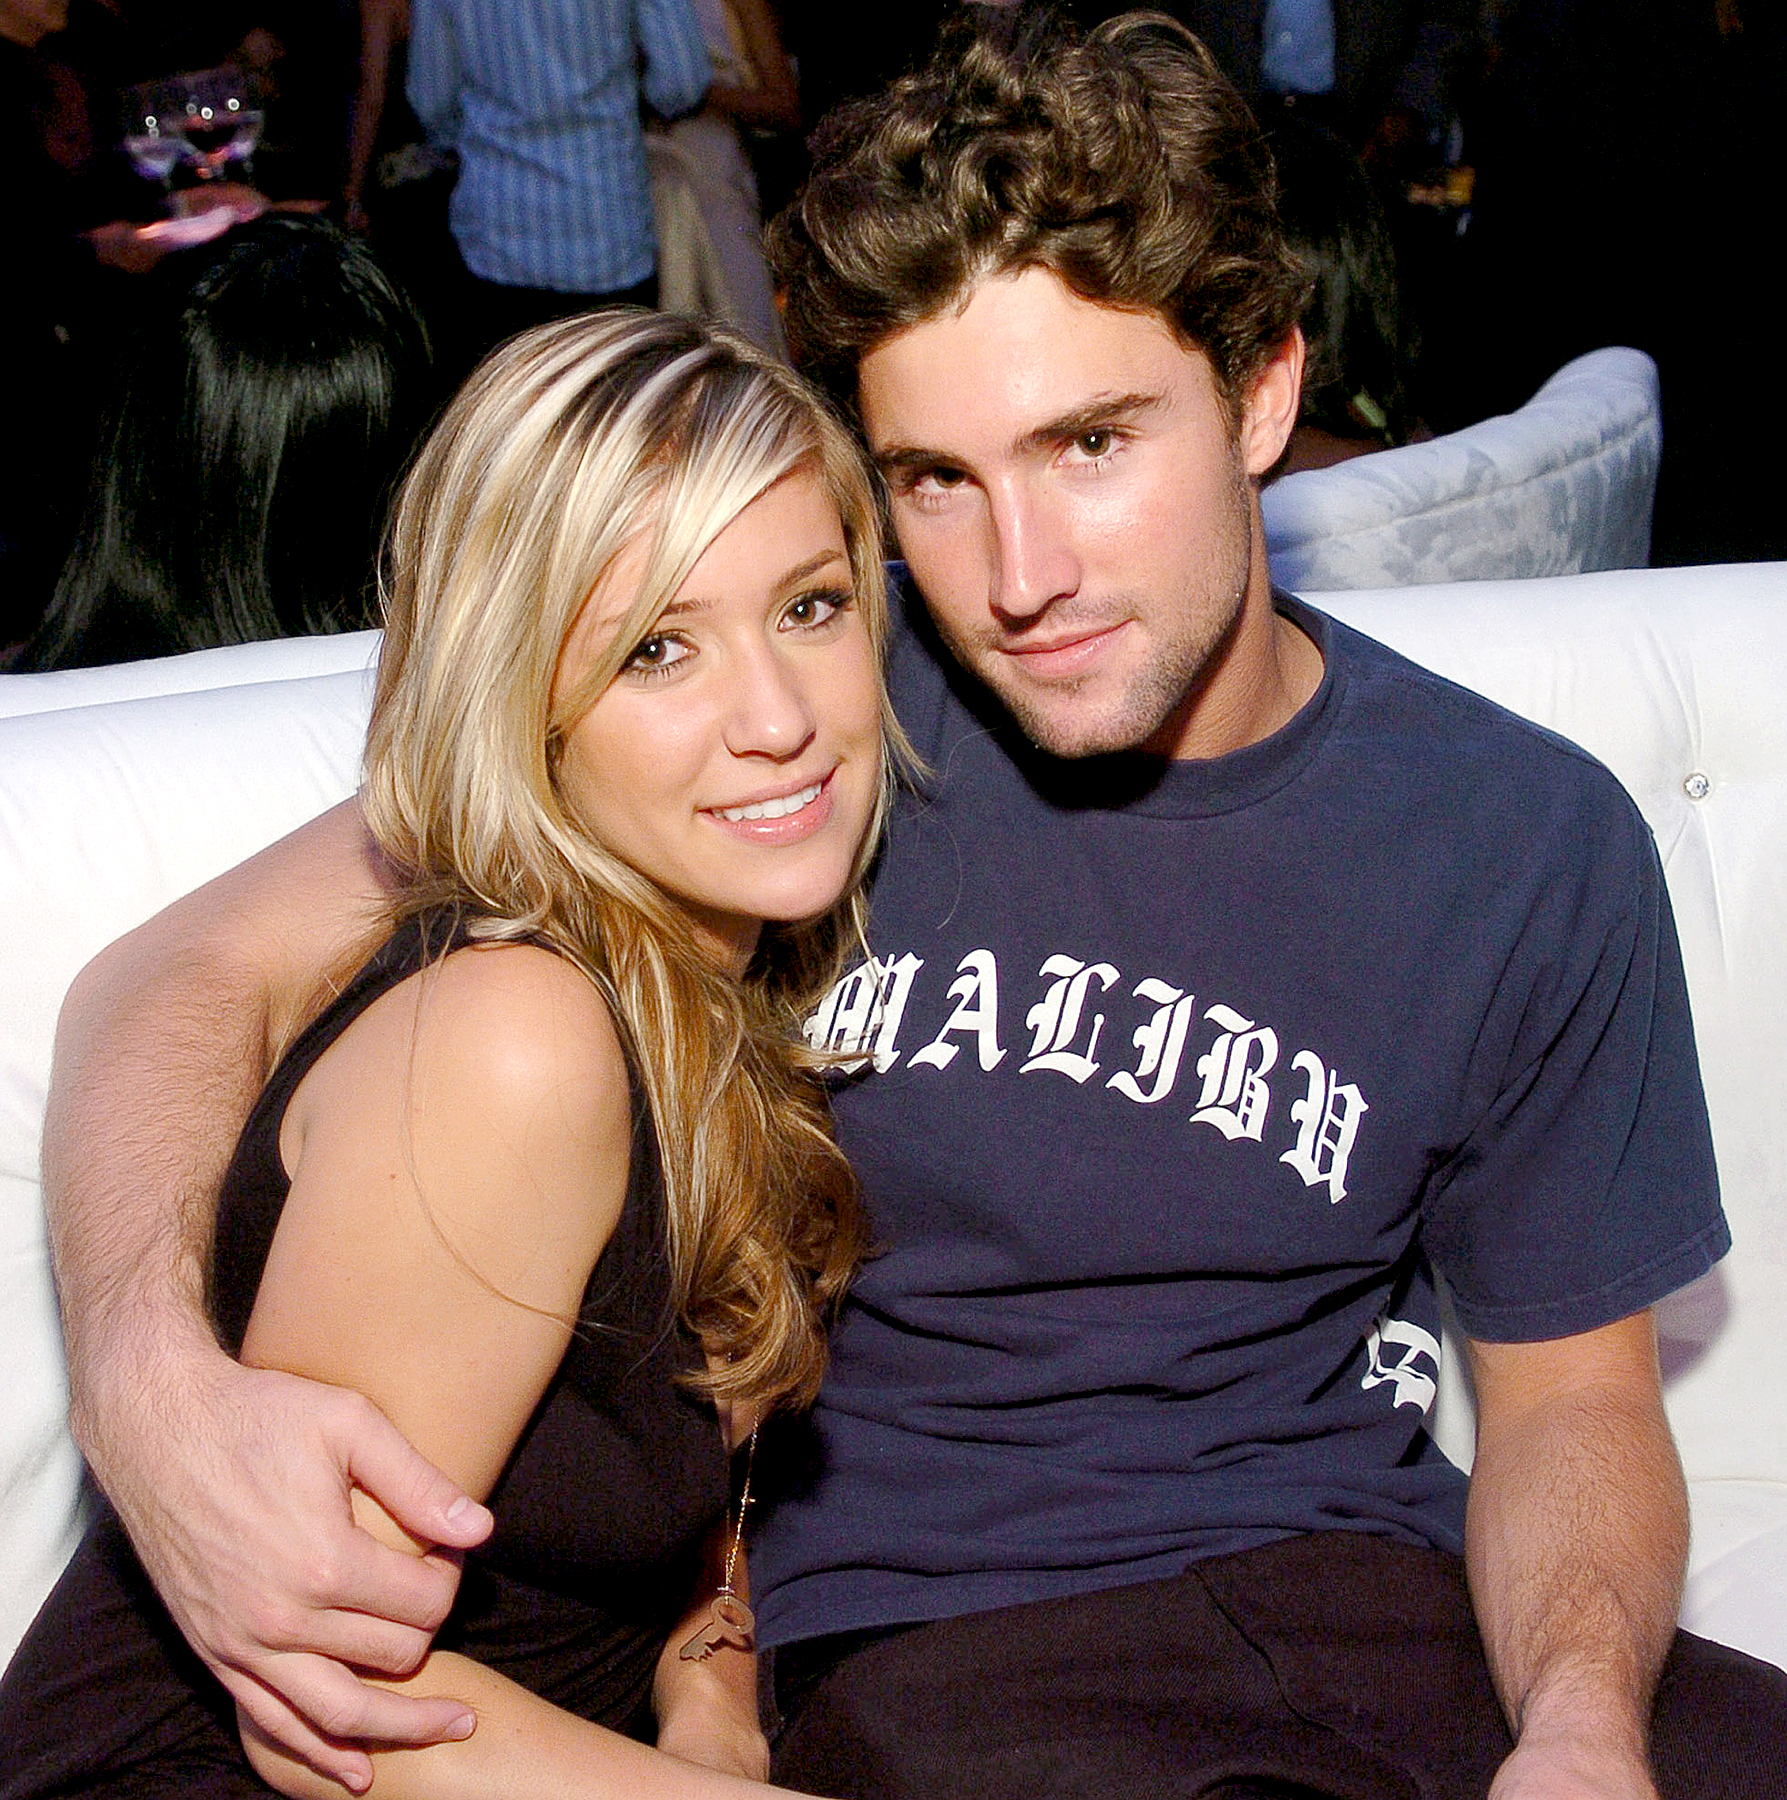 Brody jenner dating who